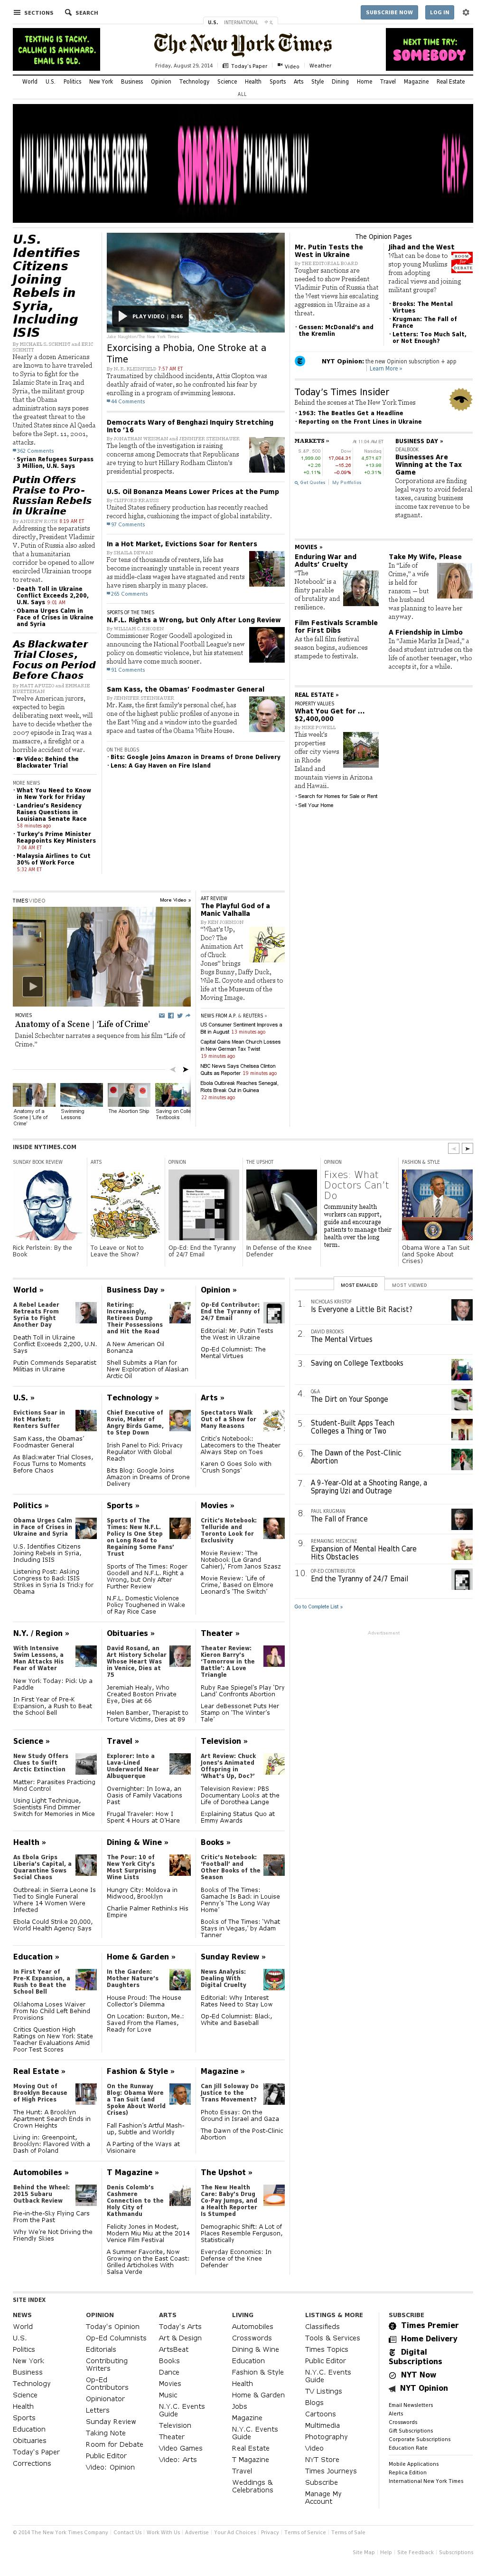 The New York Times at Friday Aug. 29, 2014, 3:11 p.m. UTC